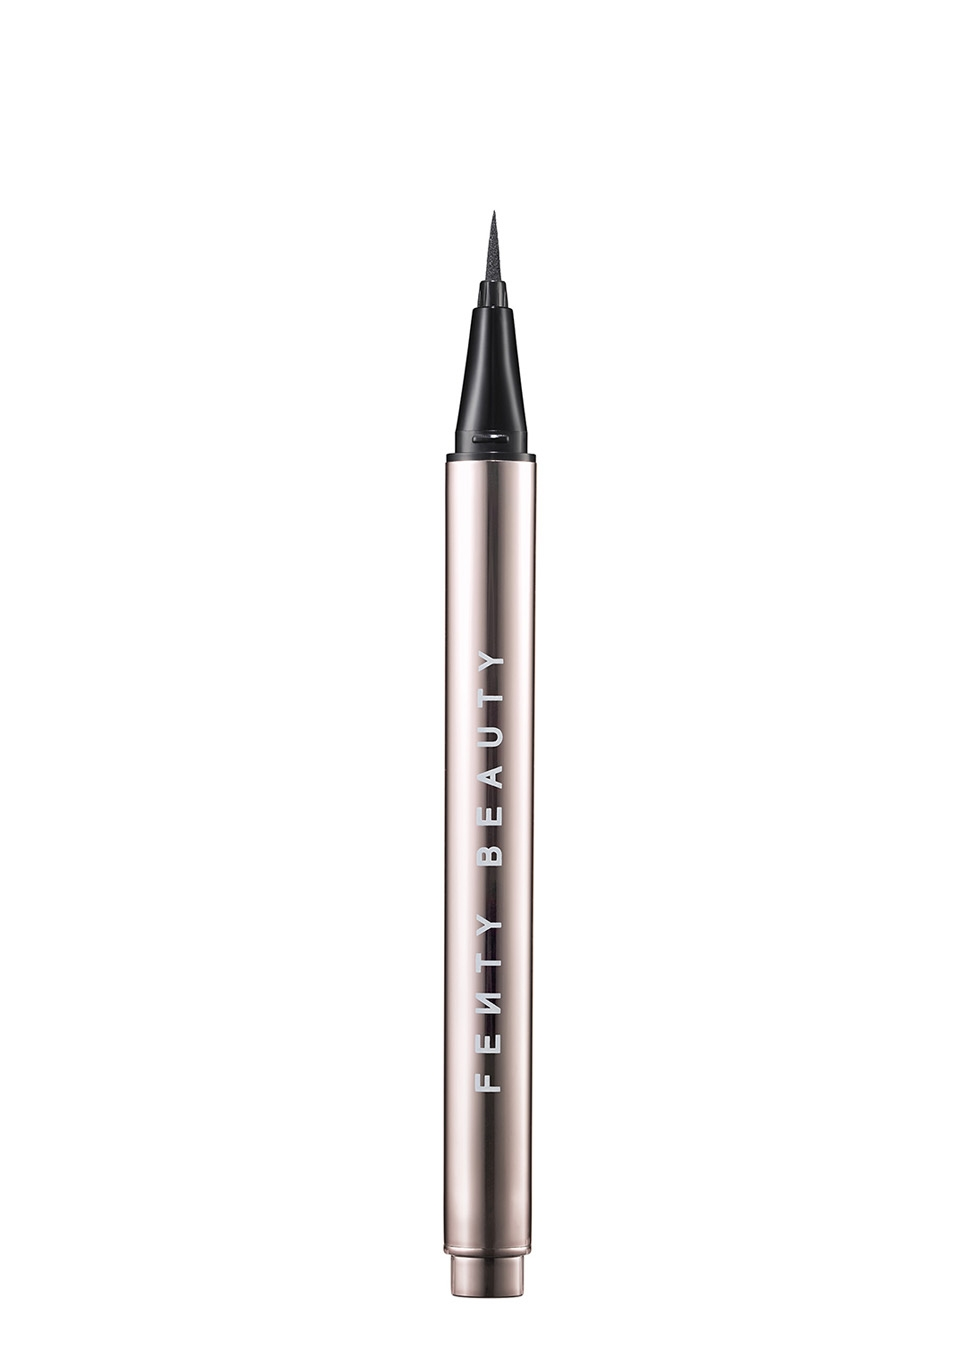 Rihanna Fenty Beauty Flyliner Longwear Liquid Eyeliner Cuz I'm Black